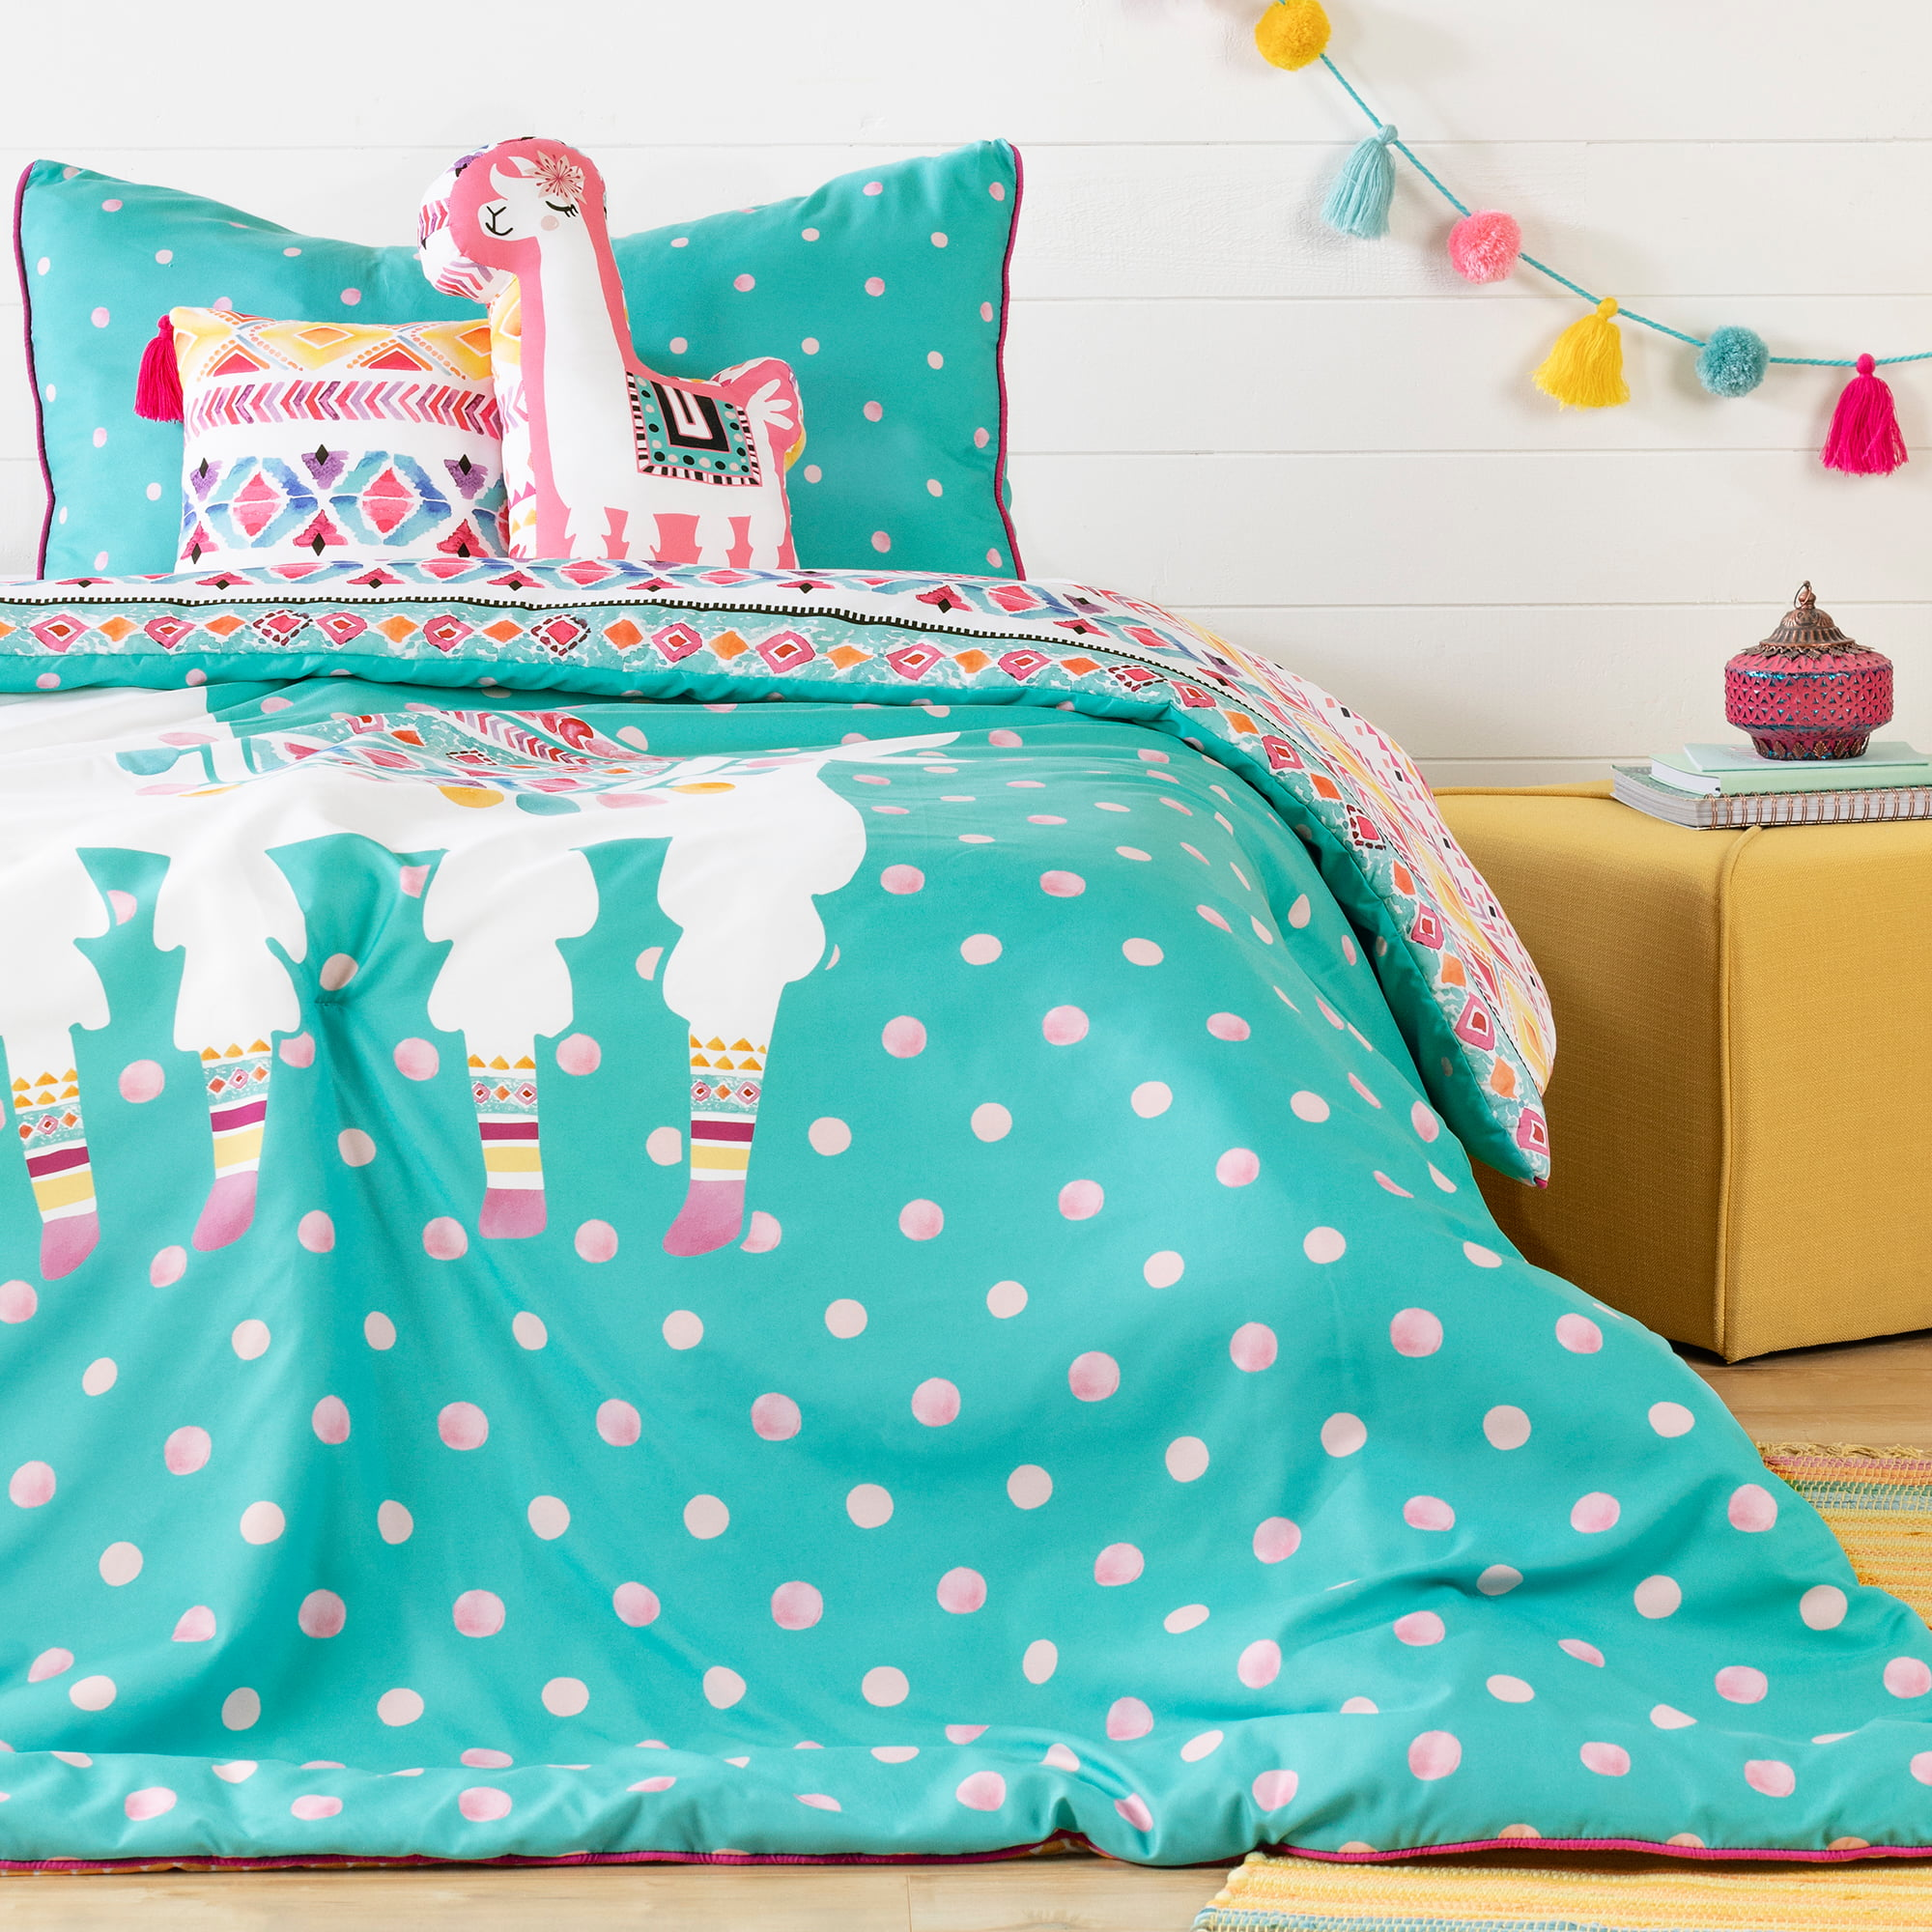 South Shore Dreamit Turquoise and Pink Kids Bedding Set ...